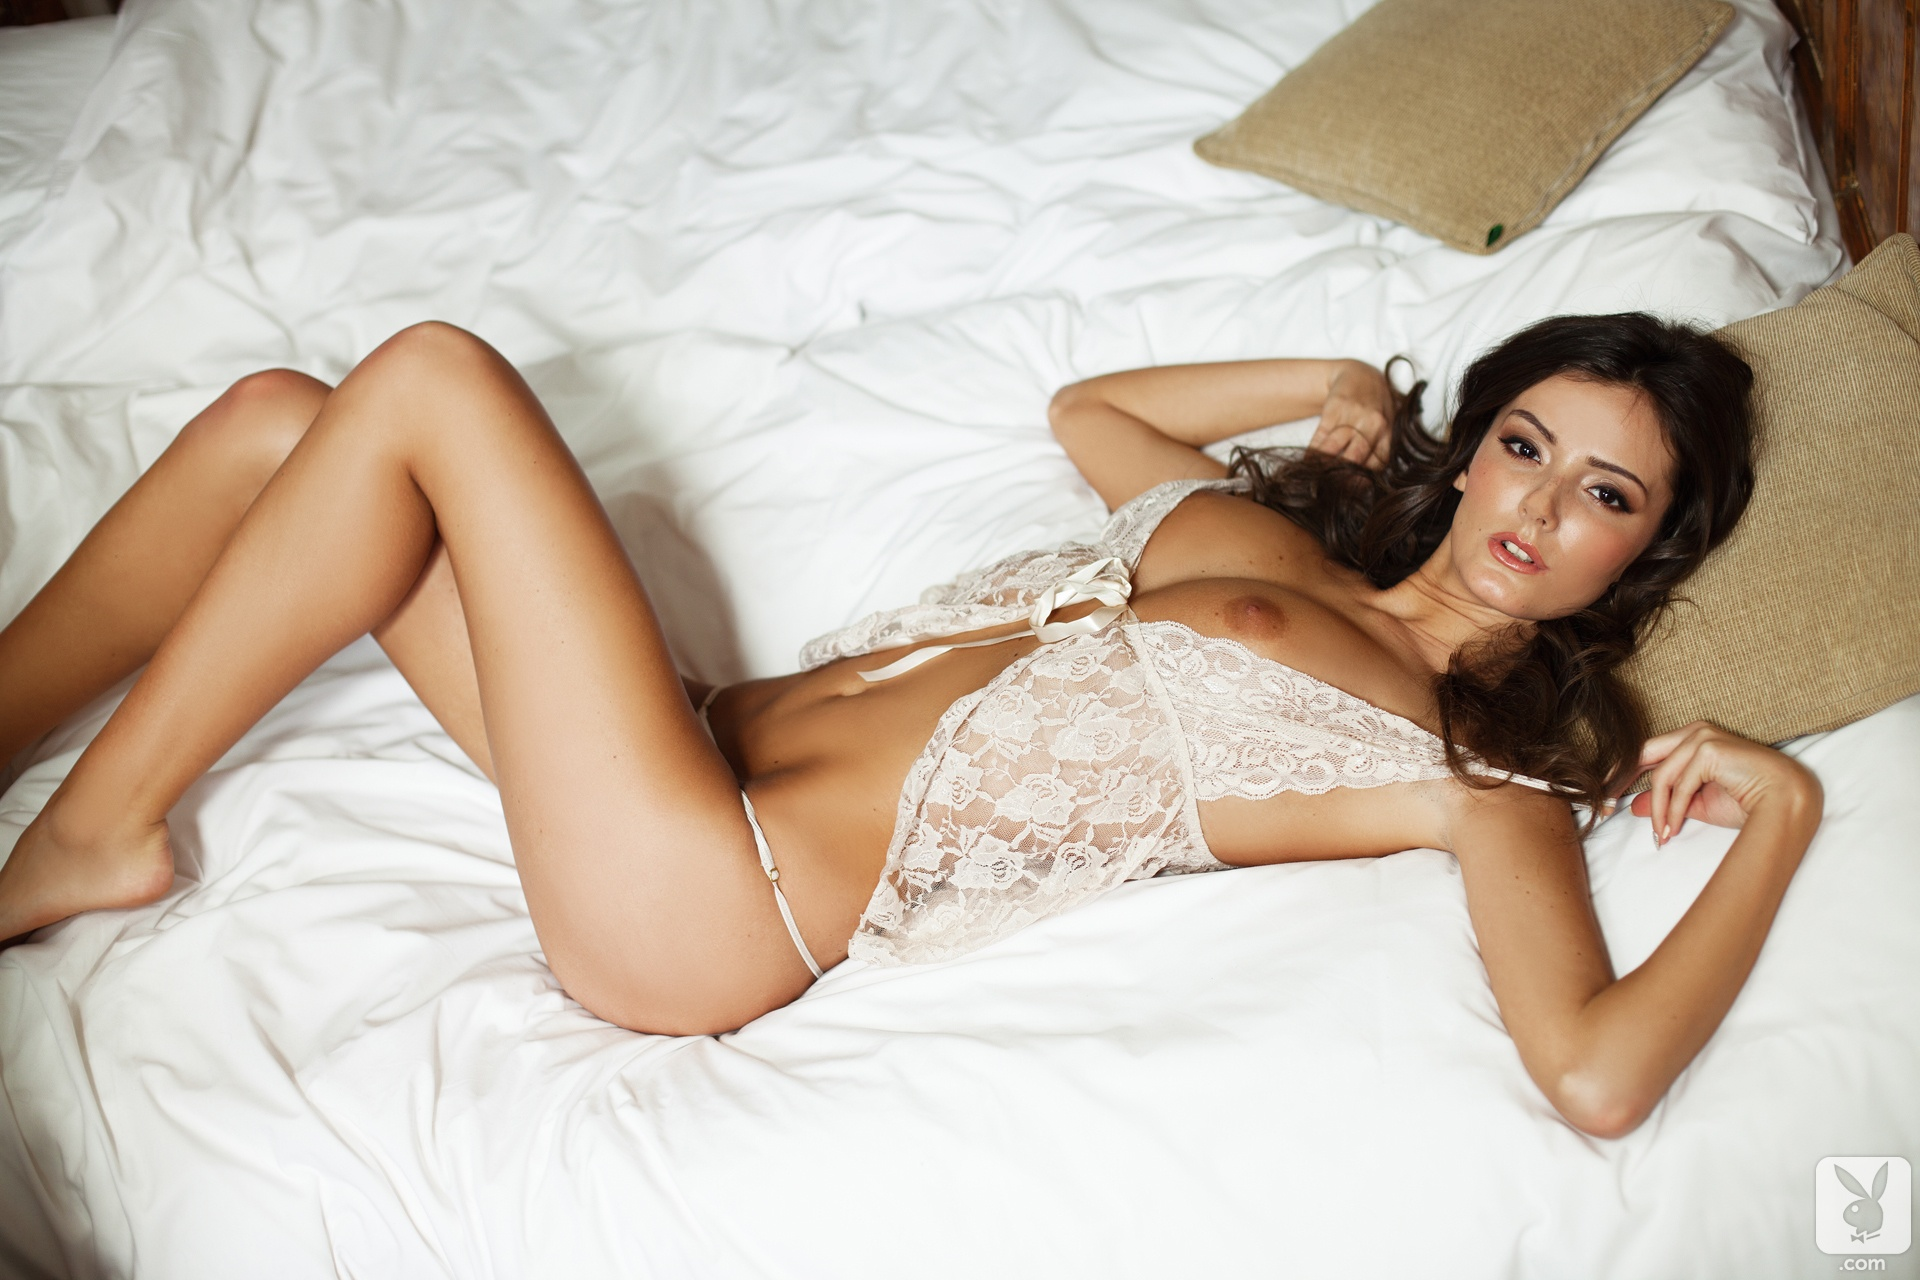 naked-girls-in-bedroom-nude-mix-vol4-87